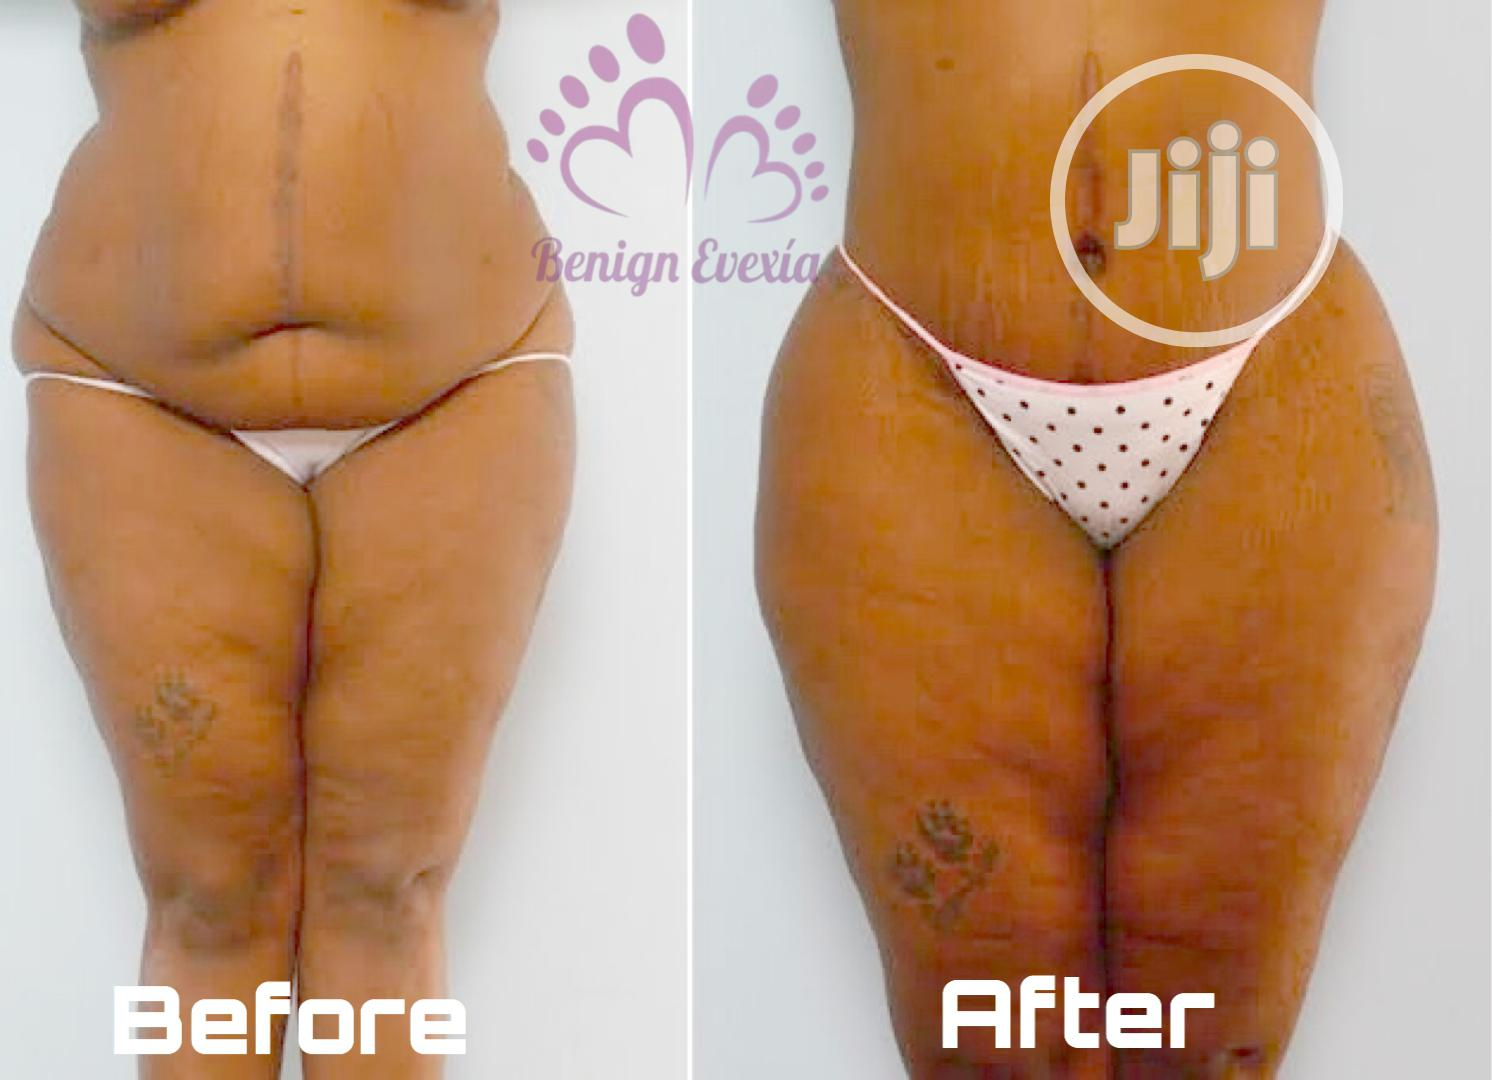 Radio Frequency Lipo Fat Reduction Skin Tigthening Cellulite | Health & Beauty Services for sale in Alimosho, Lagos State, Nigeria